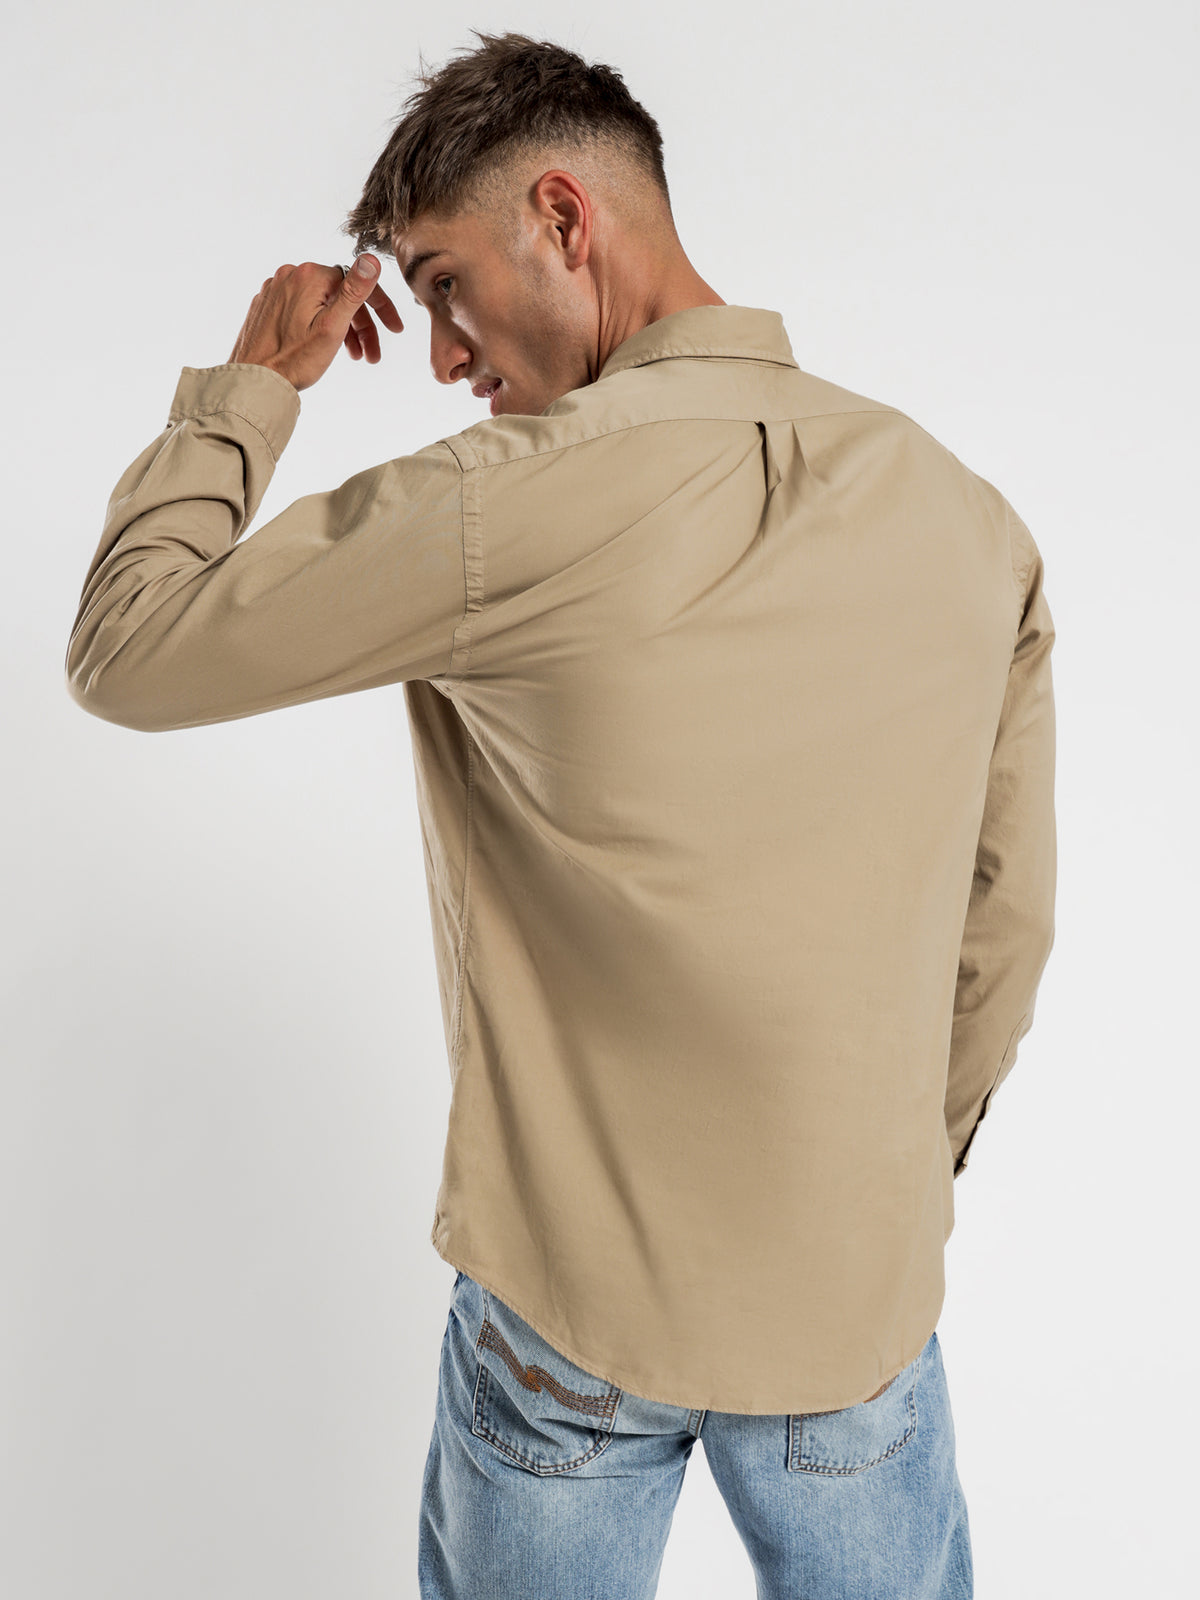 Custom Fit Shirt in Medium Beige Feather Weight Twill